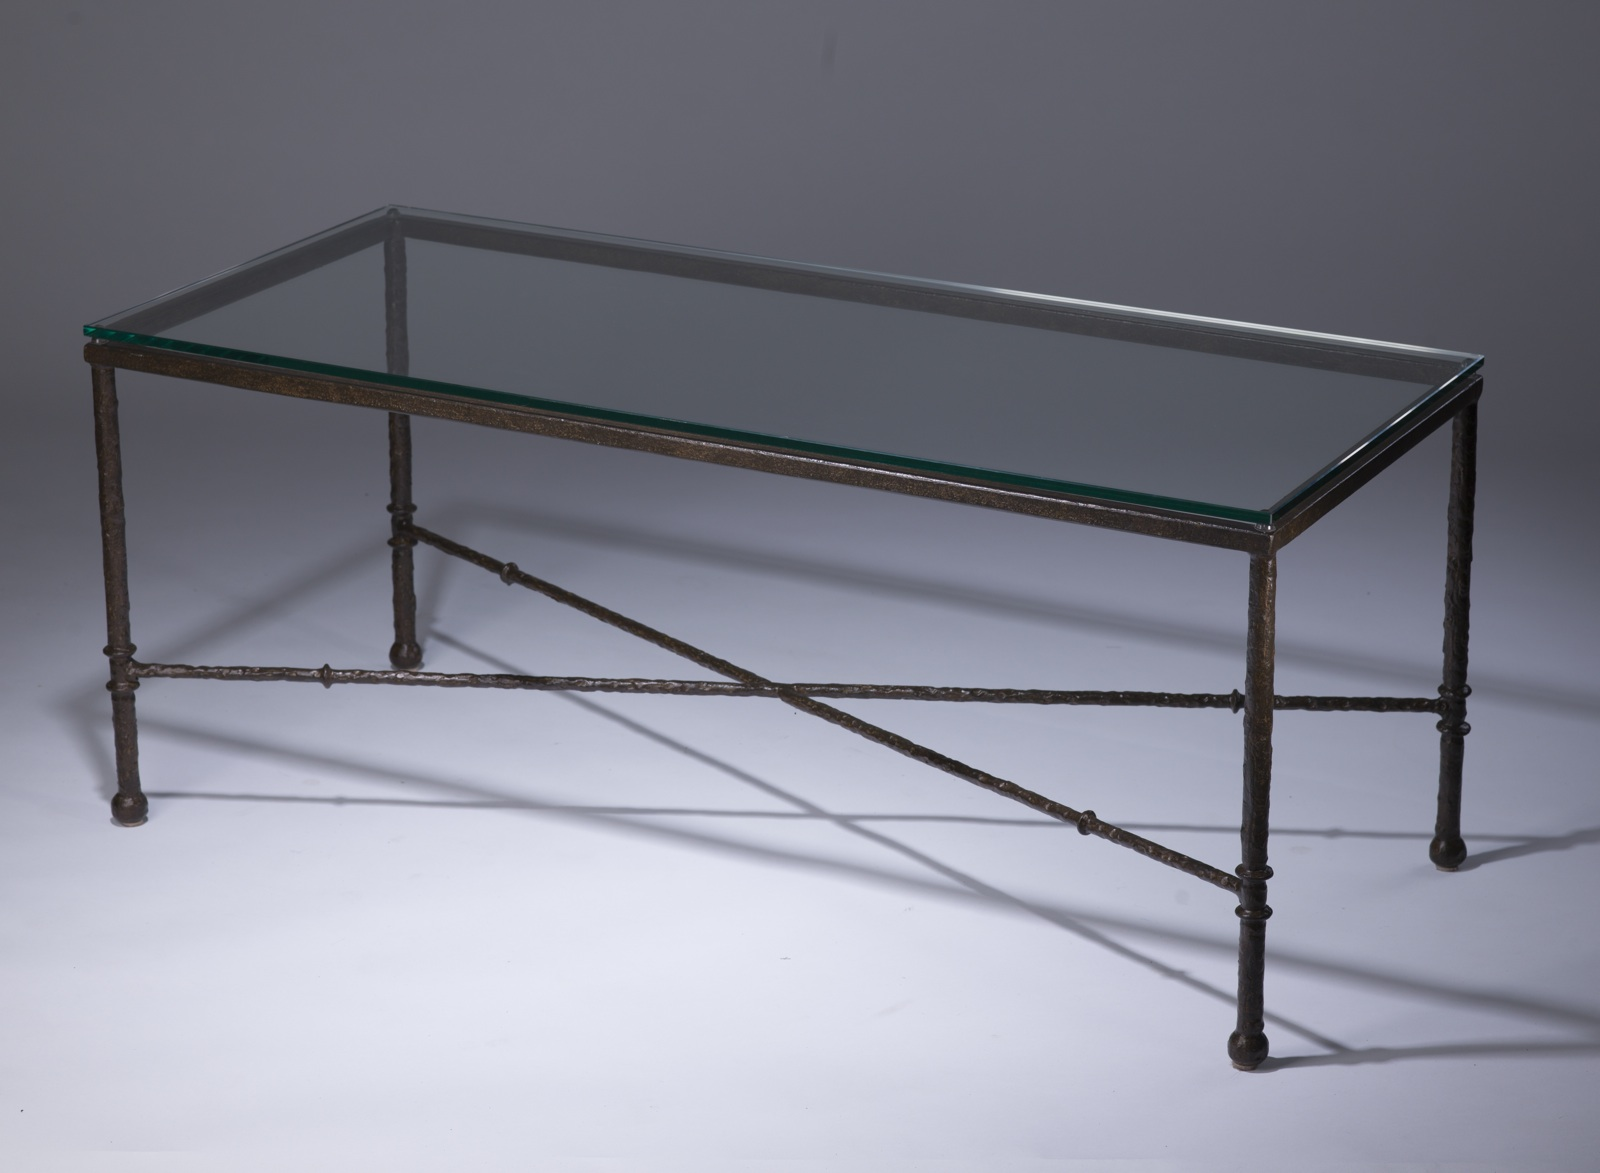 Wrought Iron 39 Simple 39 Coffee Table In Brown Bronze Finish With Glass Top T3416 Tyson London